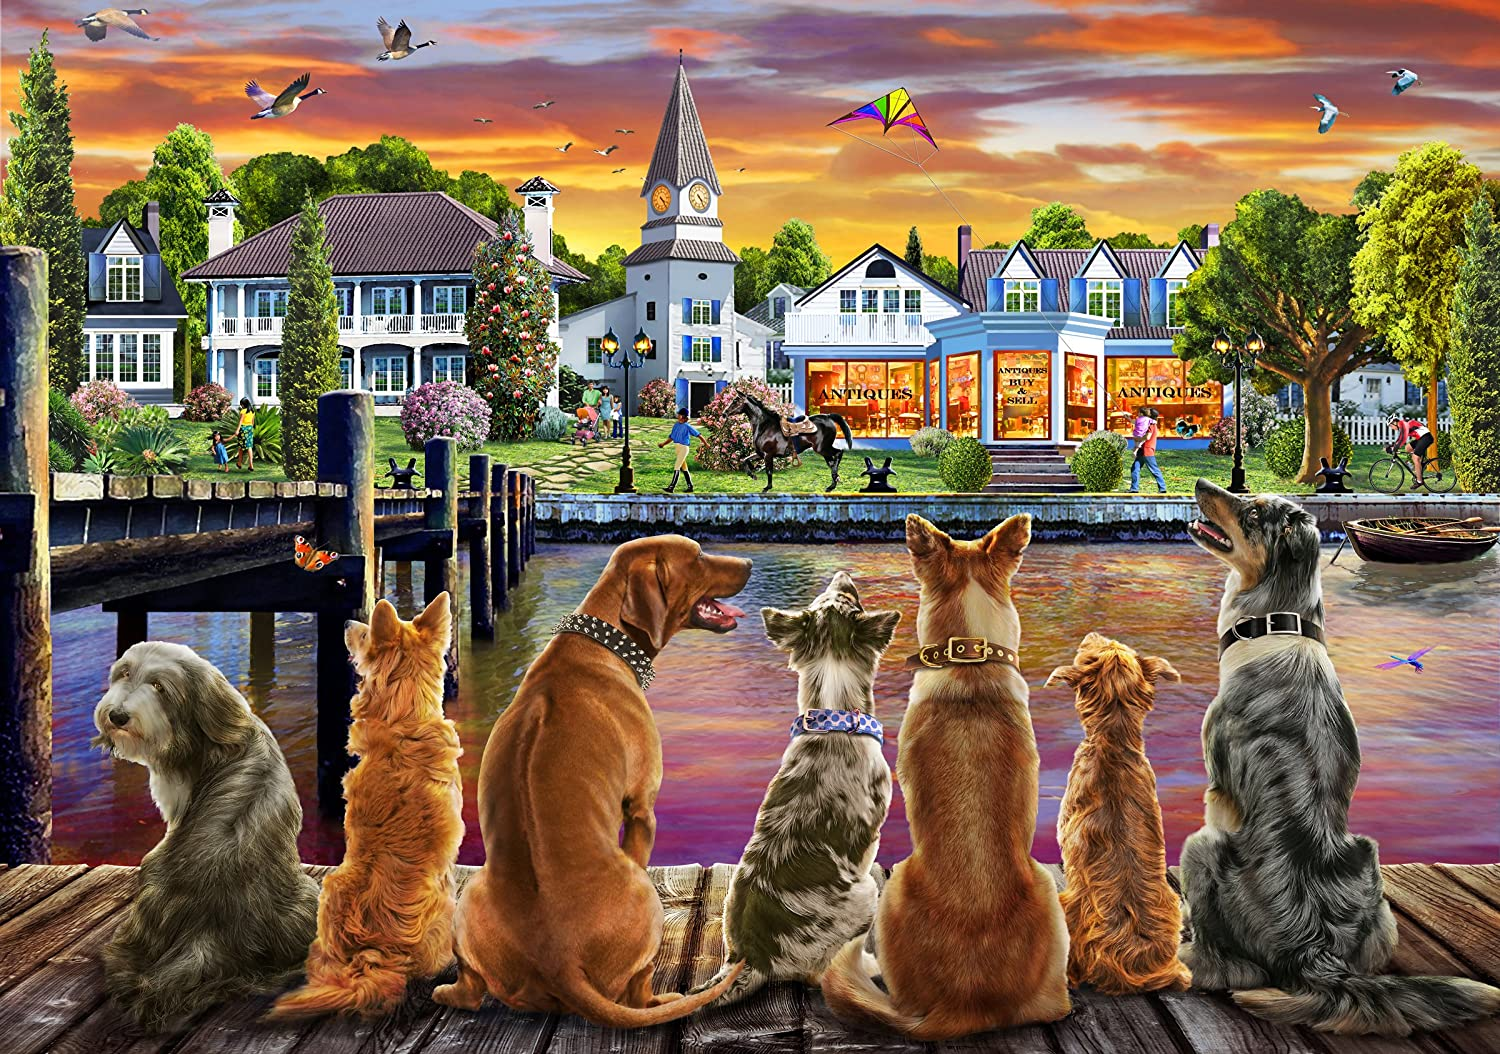 250pc Wentworth Wooden Jigsaw Puzzles - the Dogs on the Puzzles 250pc Quay B079VFL3SW, インナー下着通販のキナズ:a89cb4b6 --- ero-shop-kupidon.ru